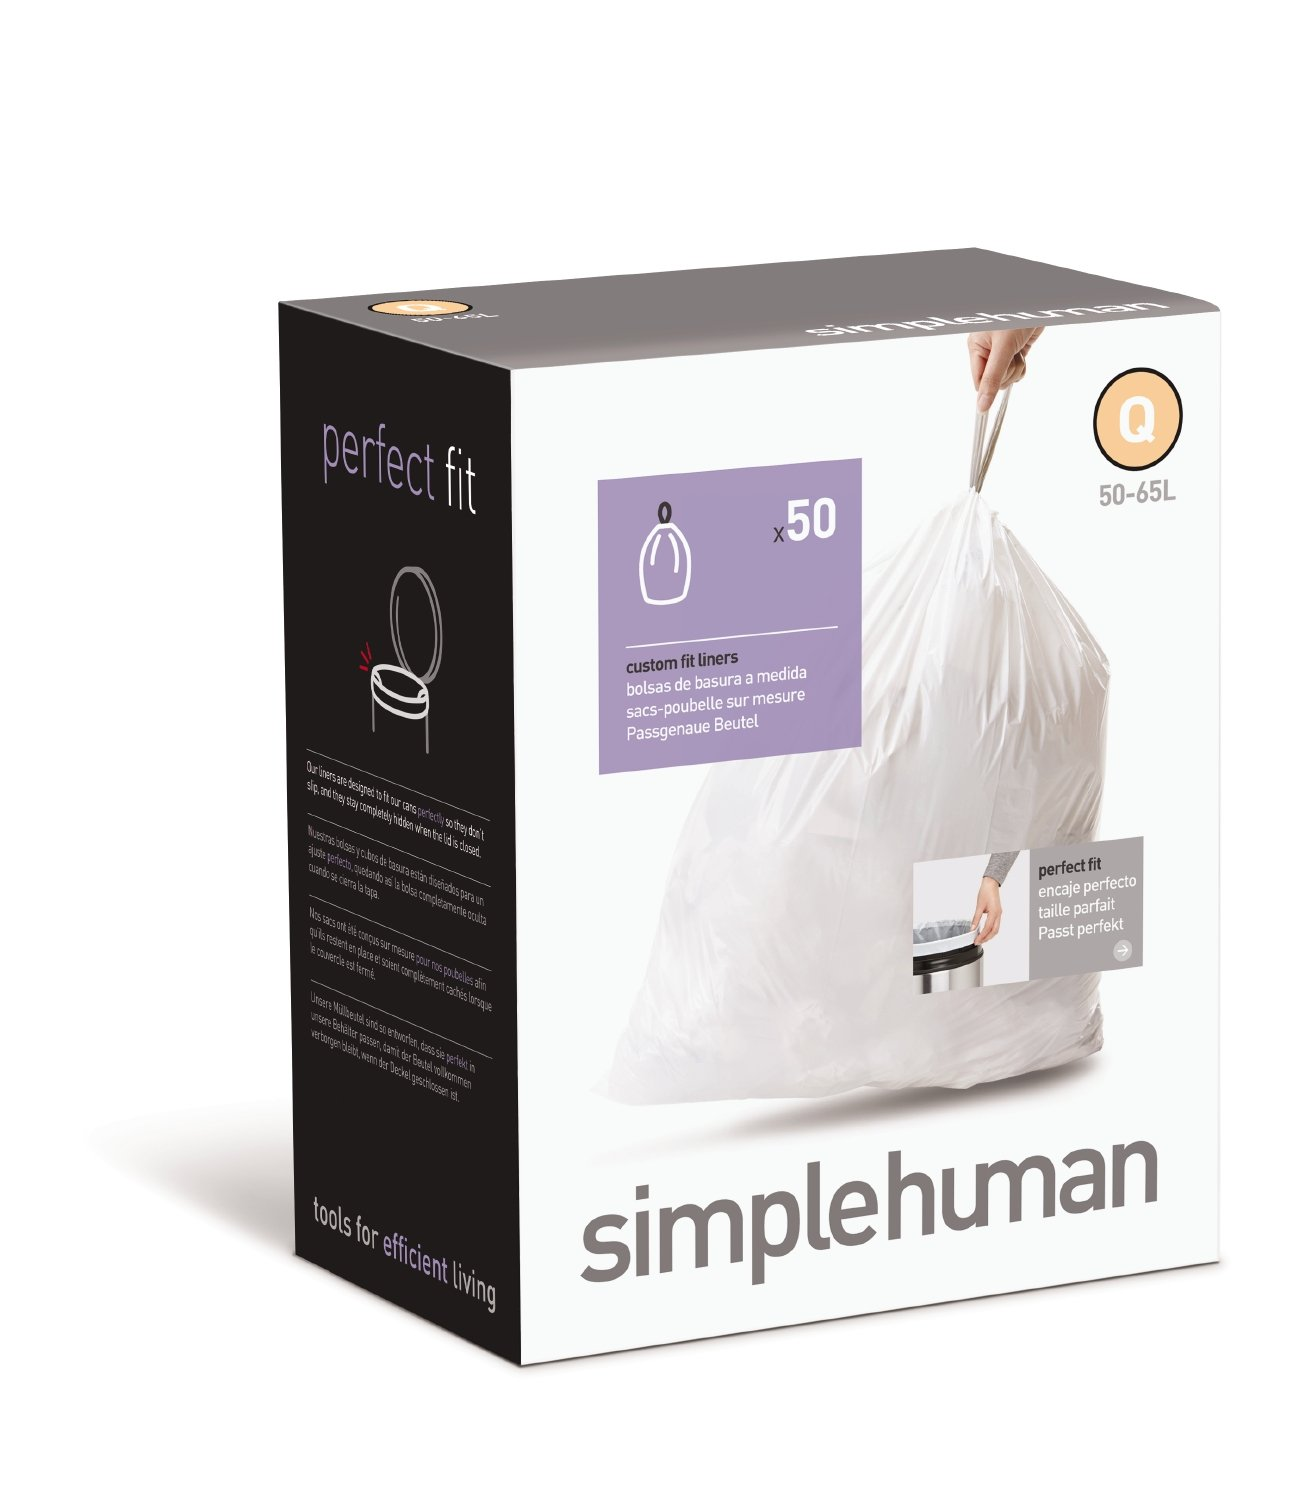 Amazon.com: simplehuman Custom Fit Trash Can Liner Q, 50-65 L / 13-17 Gal,  50-Count Box: Home & Kitchen